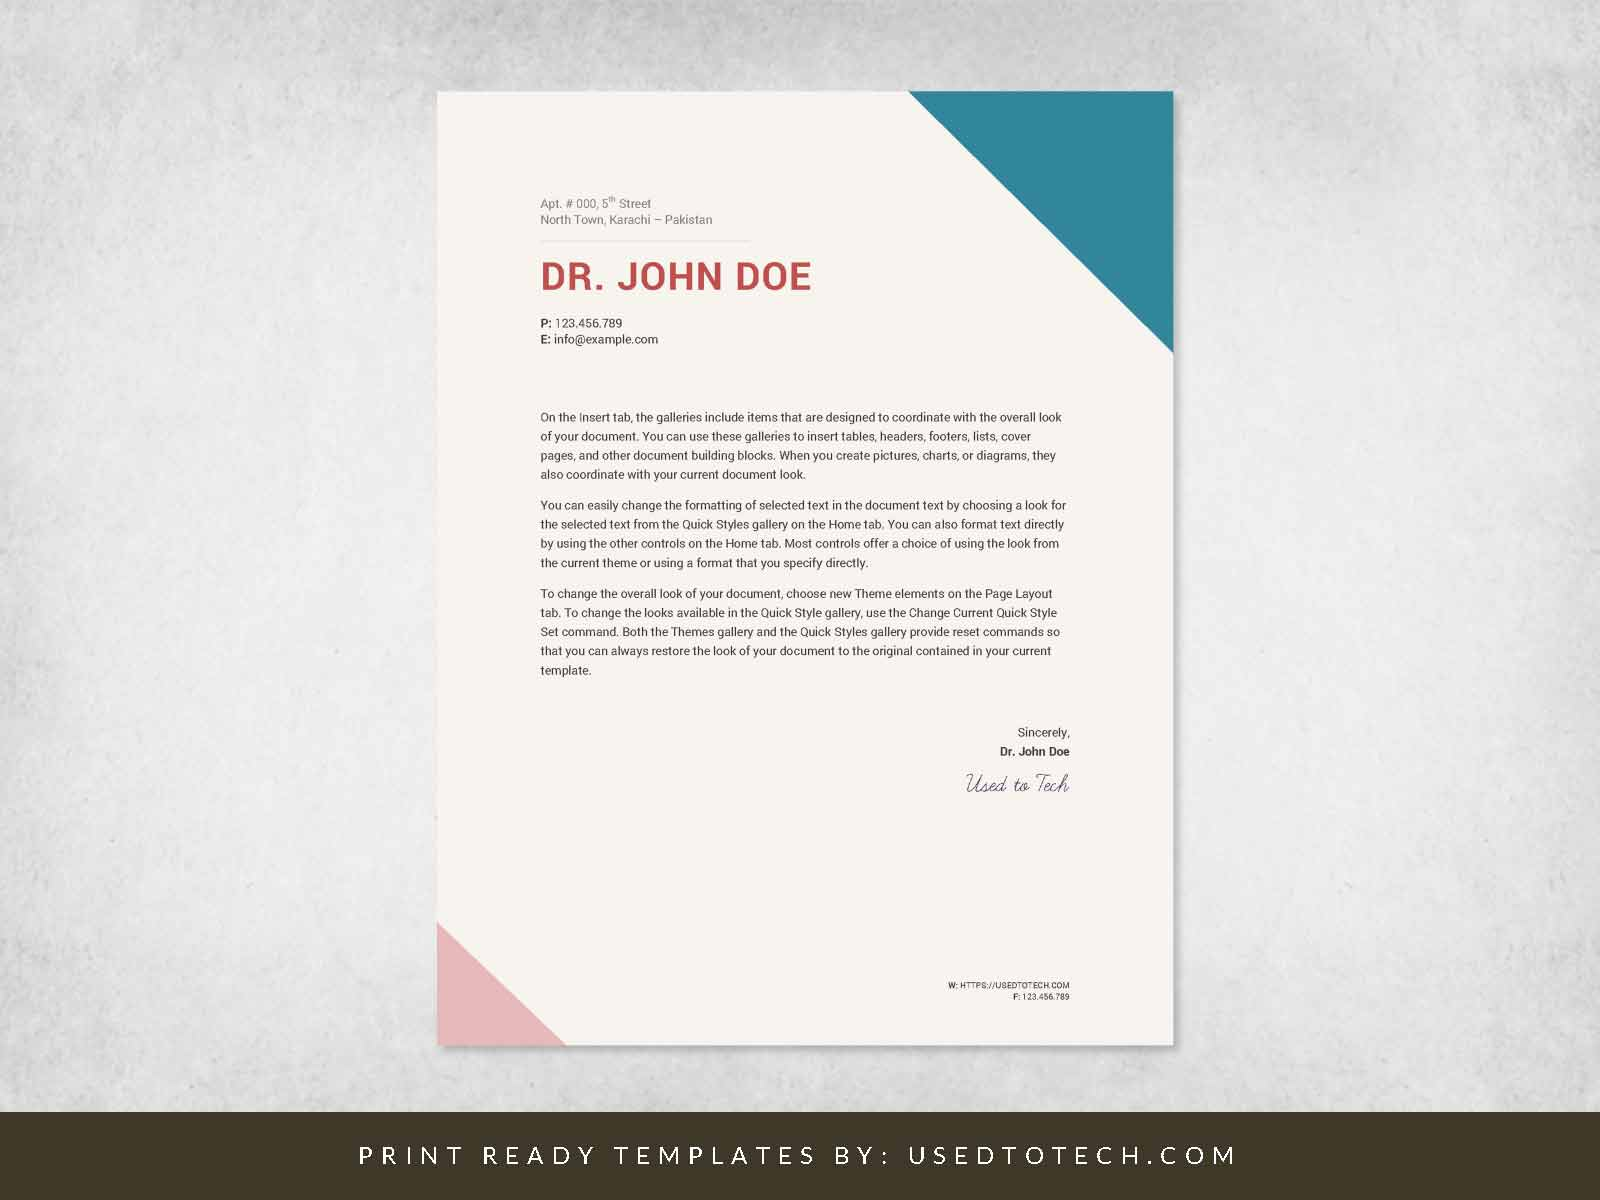 Personal Letterhead Template Word from usedtotech.com